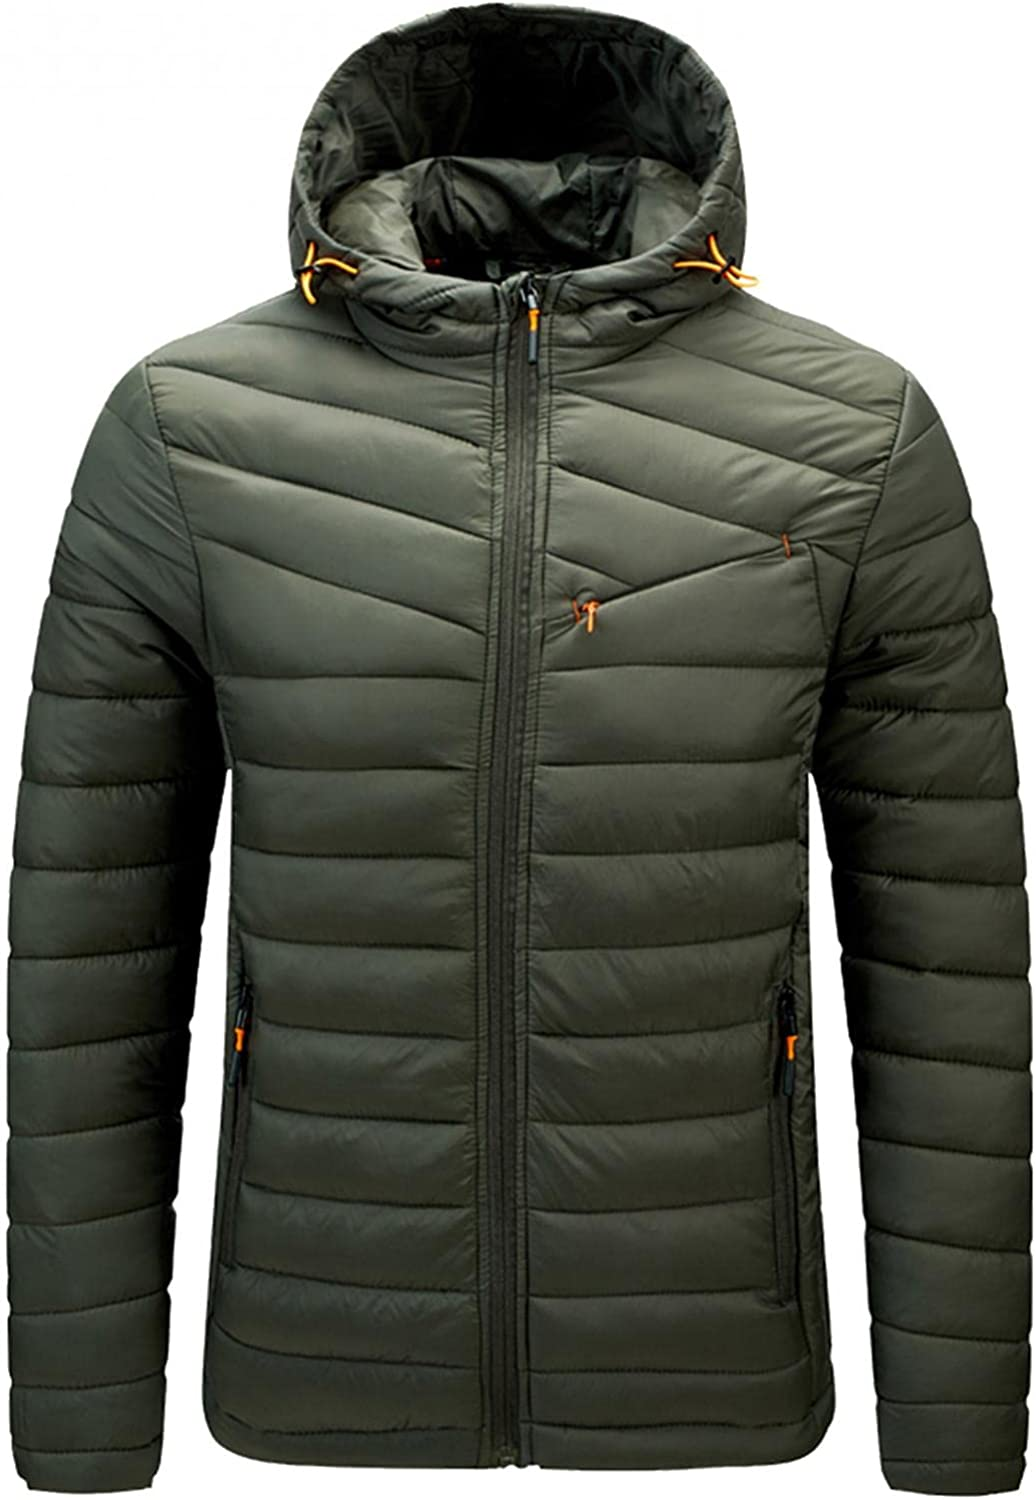 Puffer Jacket Translated for Men Casual Solid Zipper Max 64% OFF Pocket Lightweight Wat